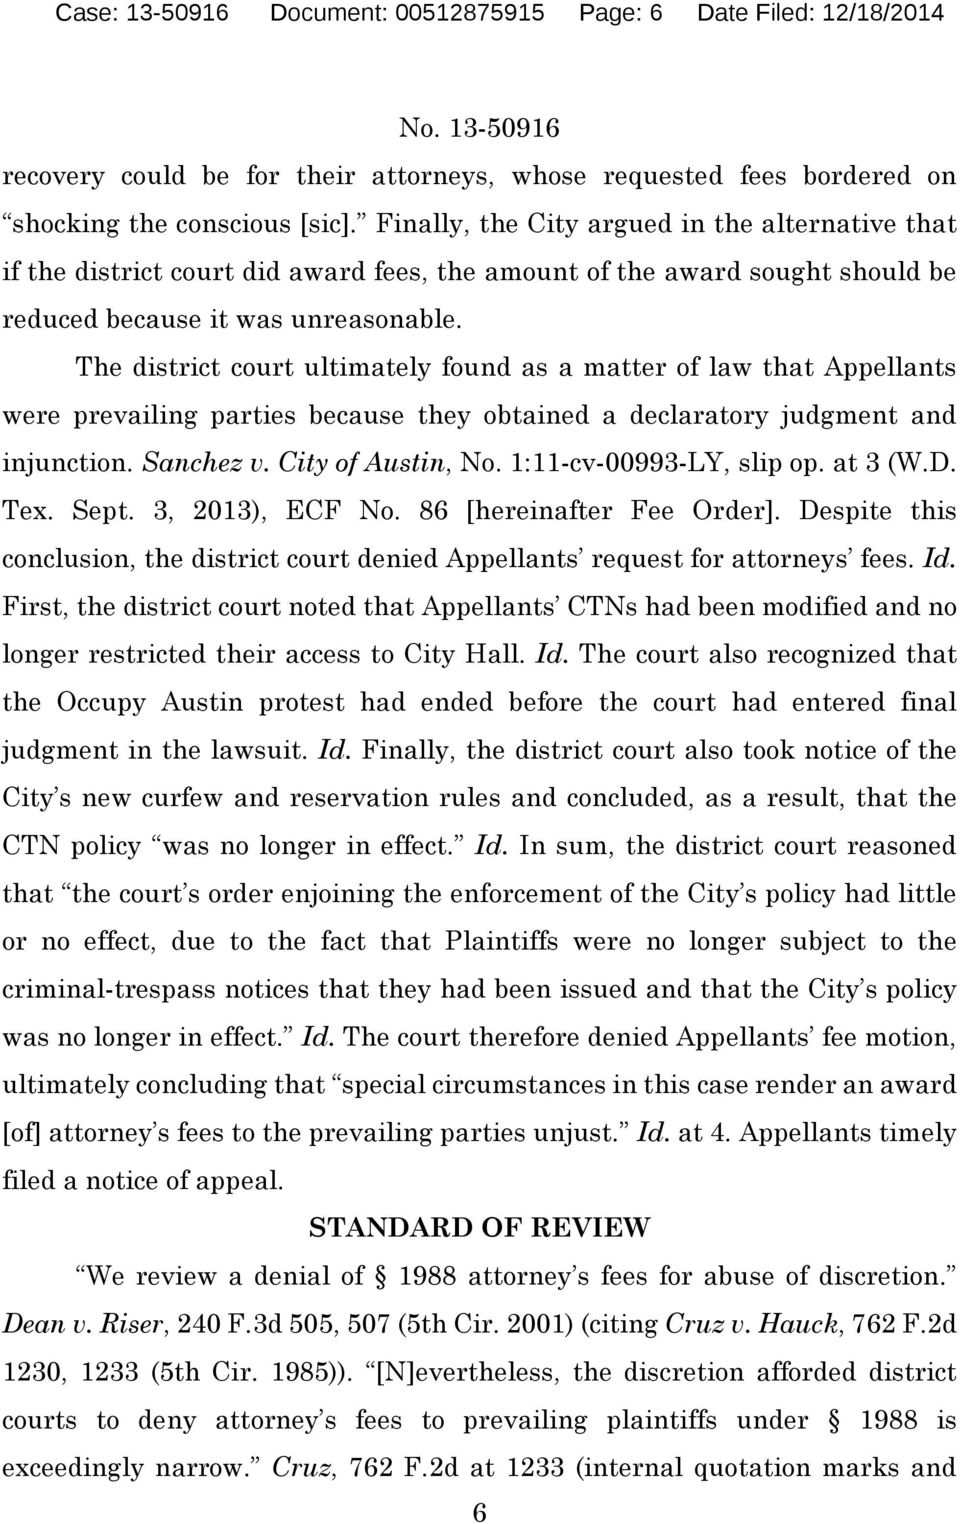 The district court ultimately found as a matter of law that Appellants were prevailing parties because they obtained a declaratory judgment and injunction. Sanchez v. City of Austin, No.